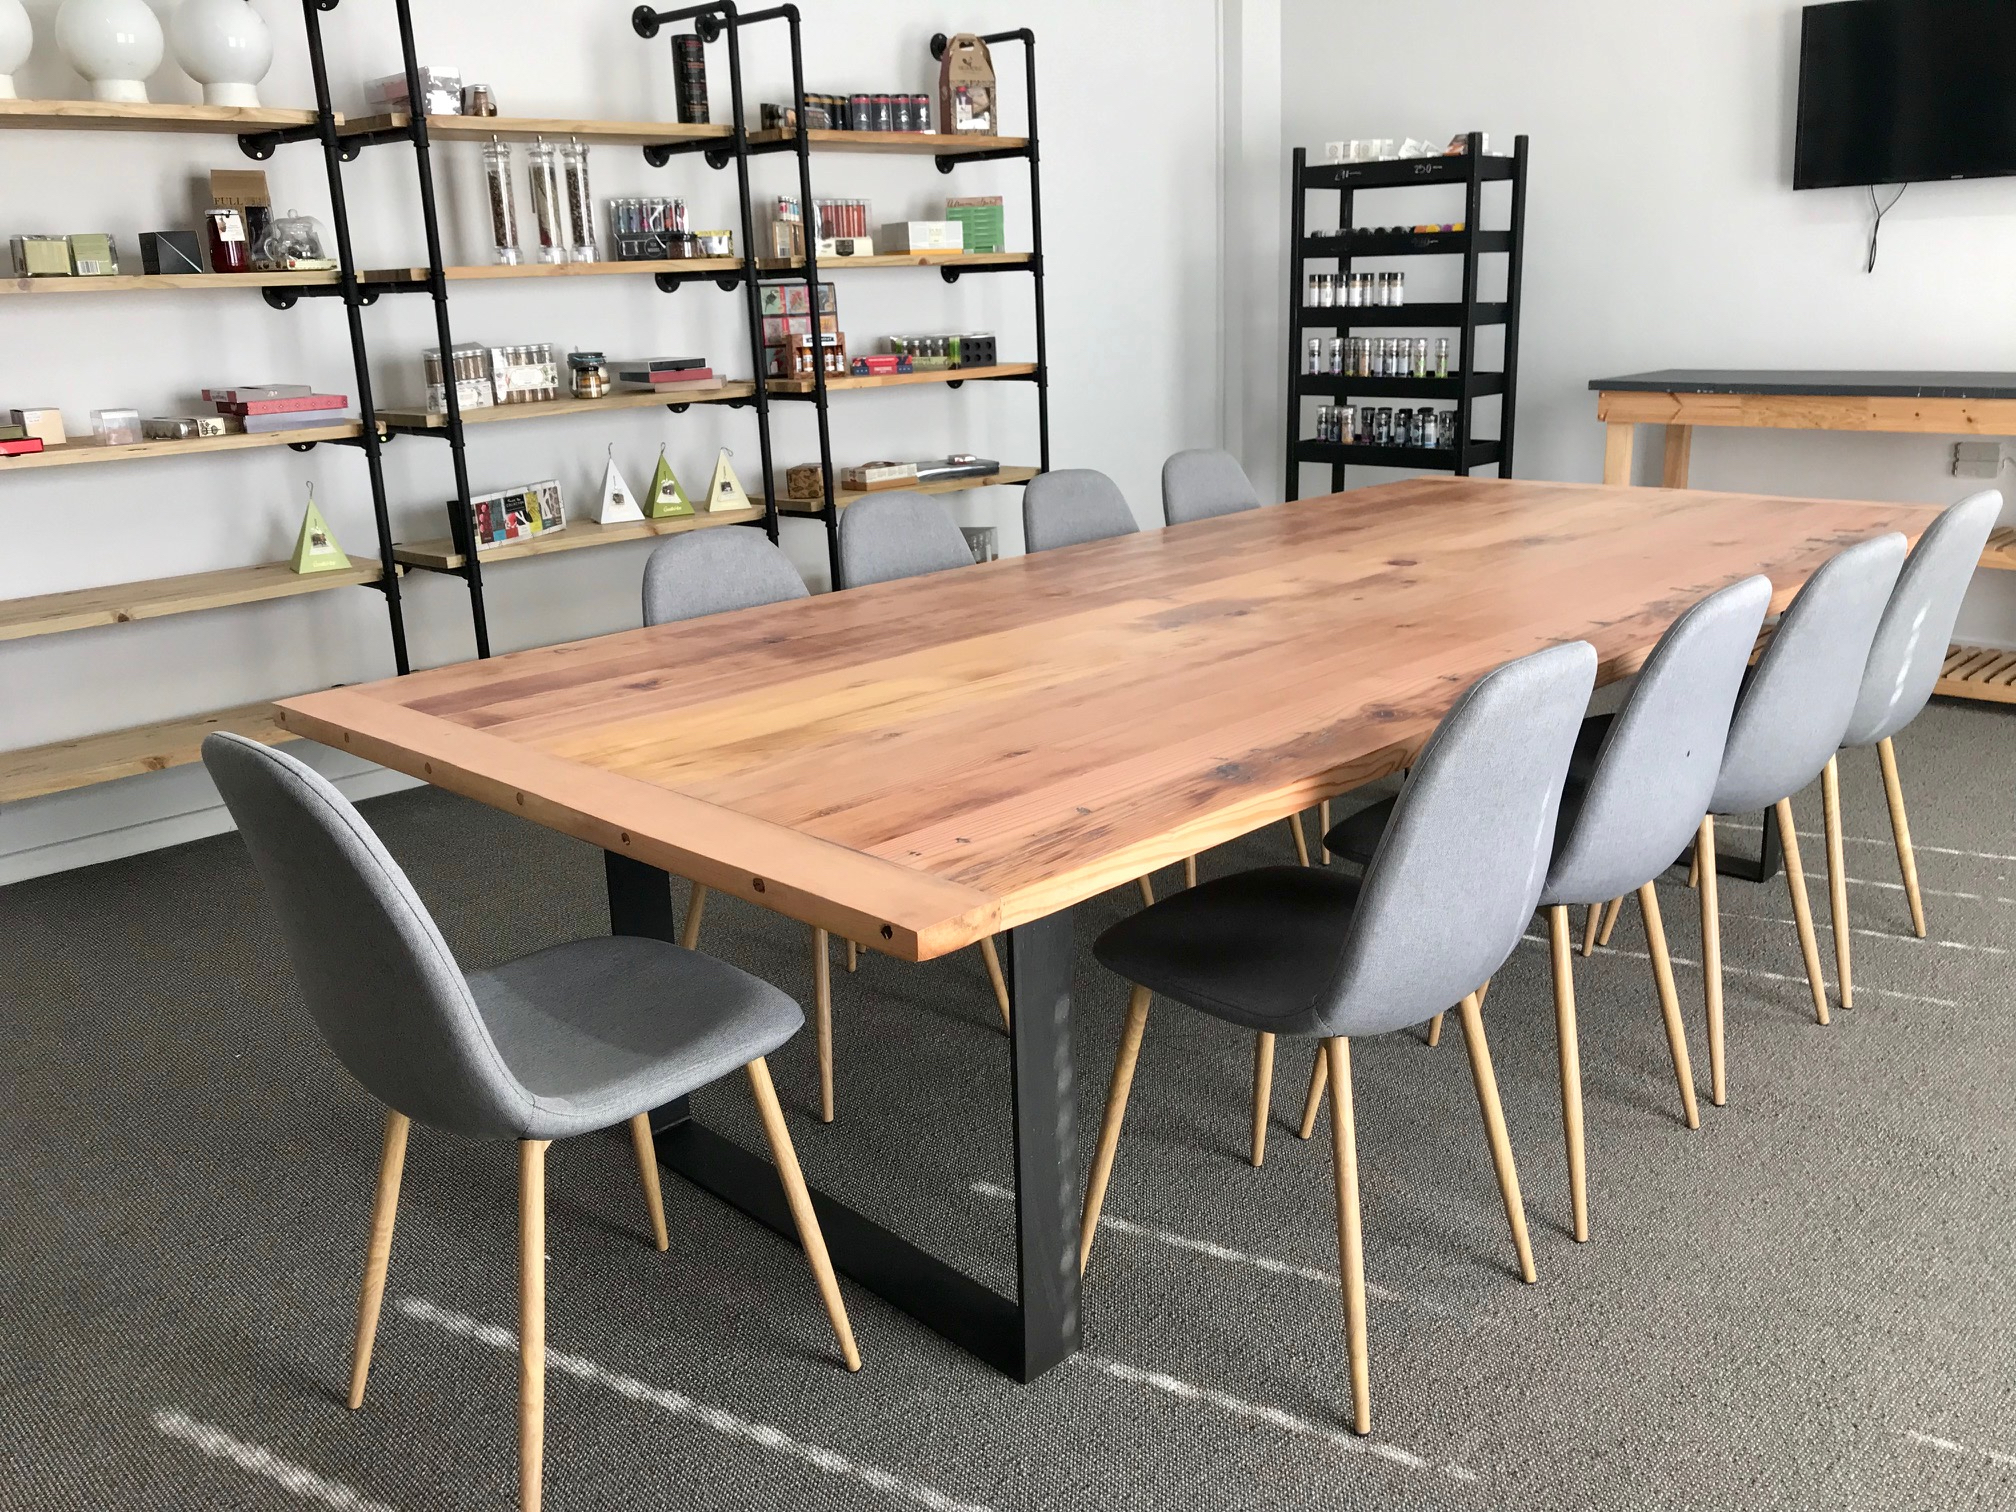 Recycled Oregon boardroom table